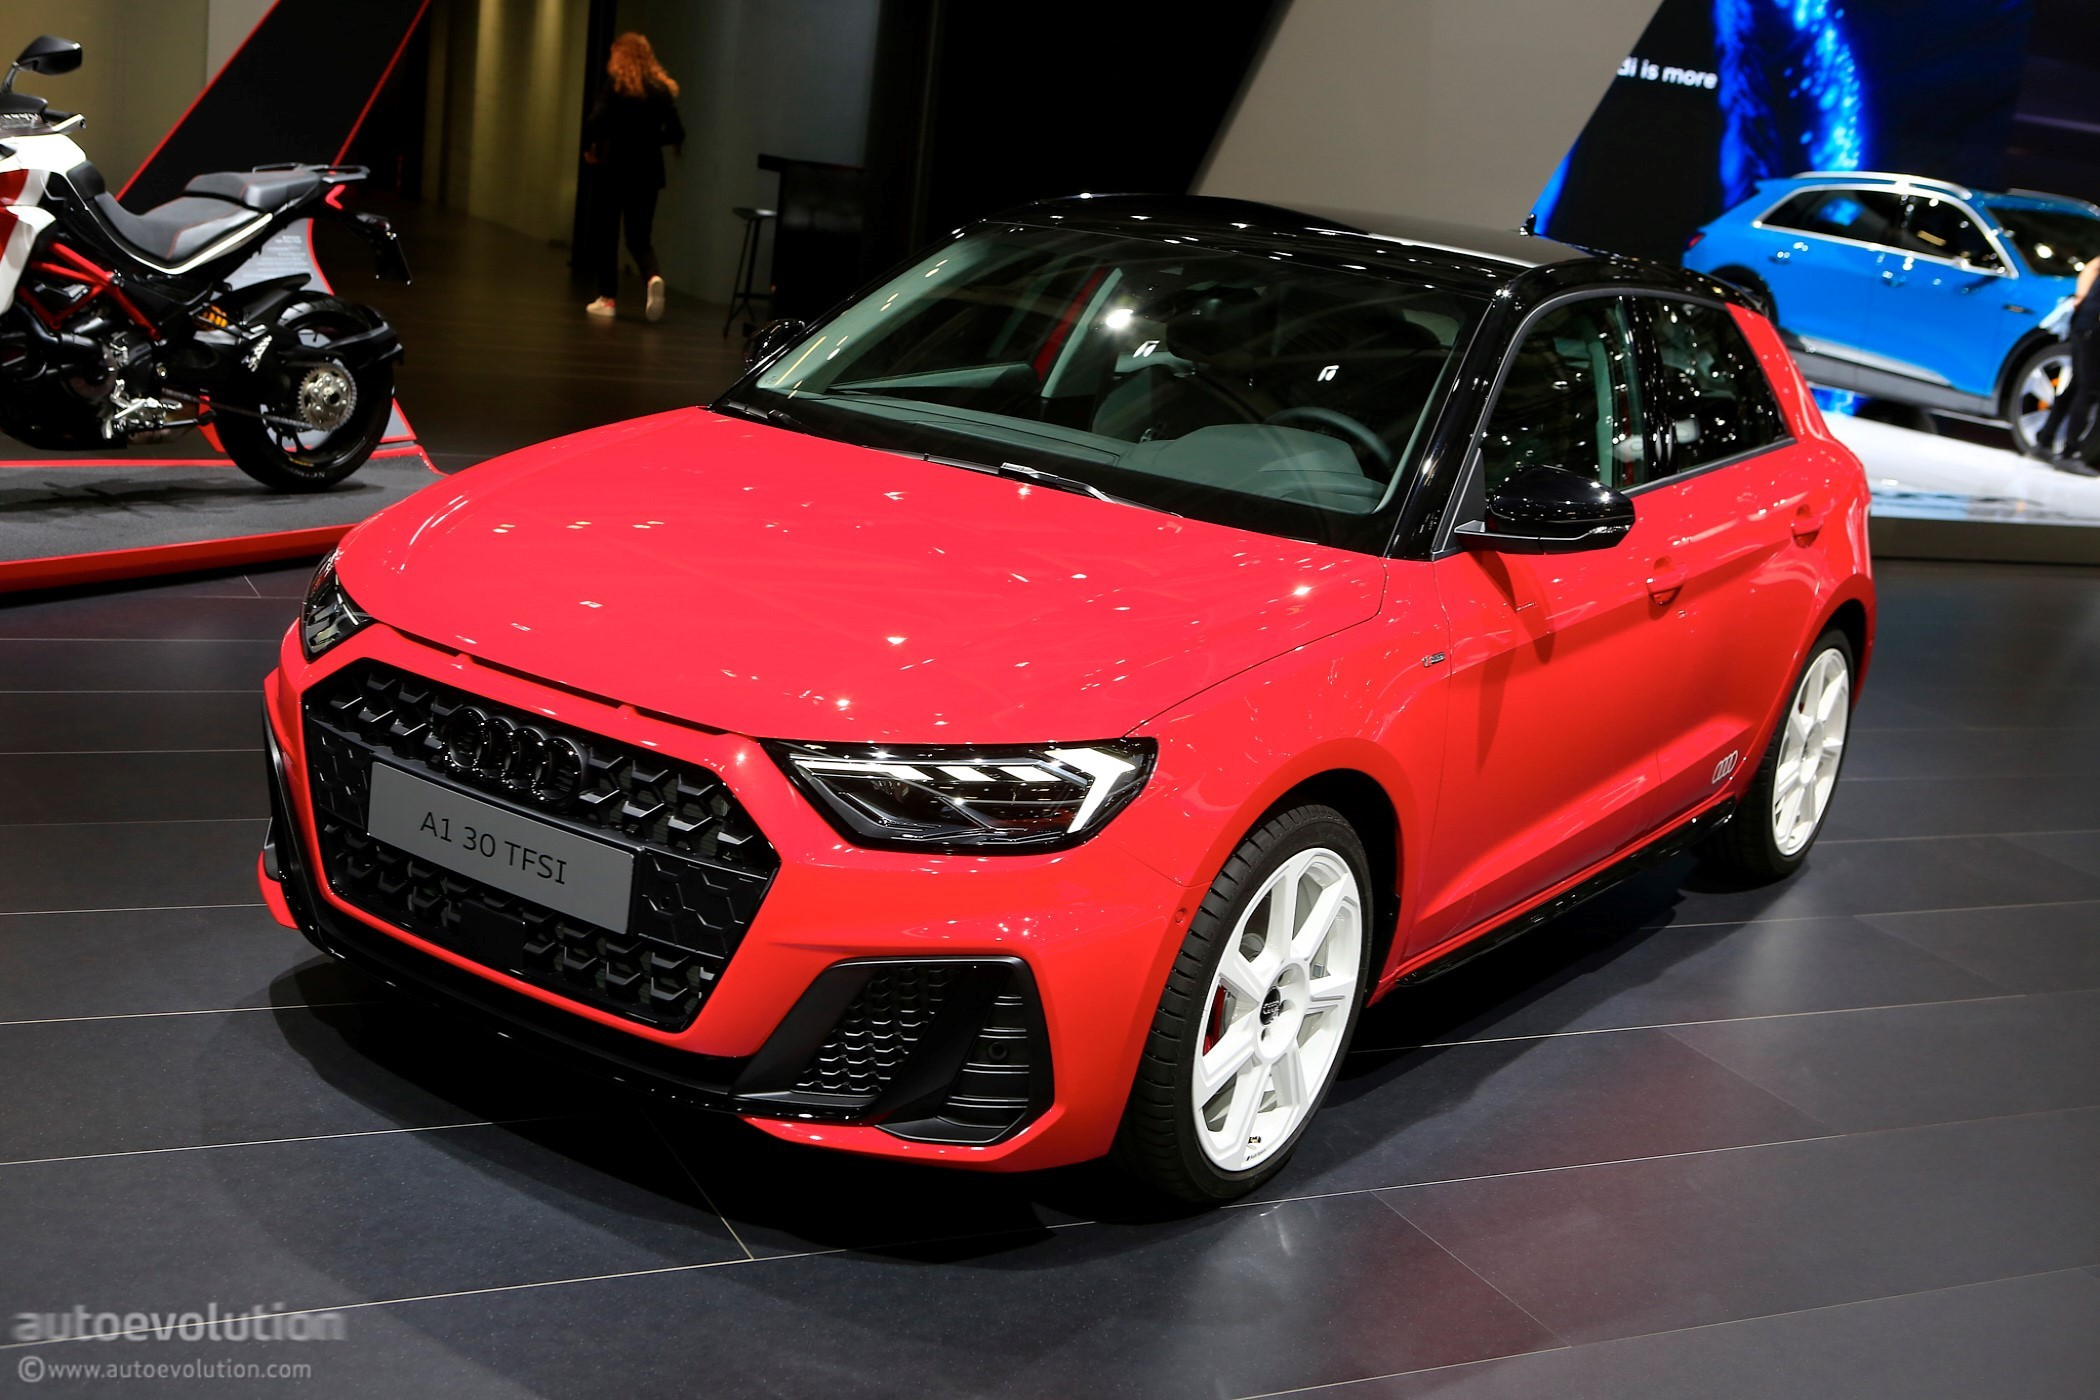 2018 paris motor show new audi a1 sportback looks very premium autoevolution. Black Bedroom Furniture Sets. Home Design Ideas